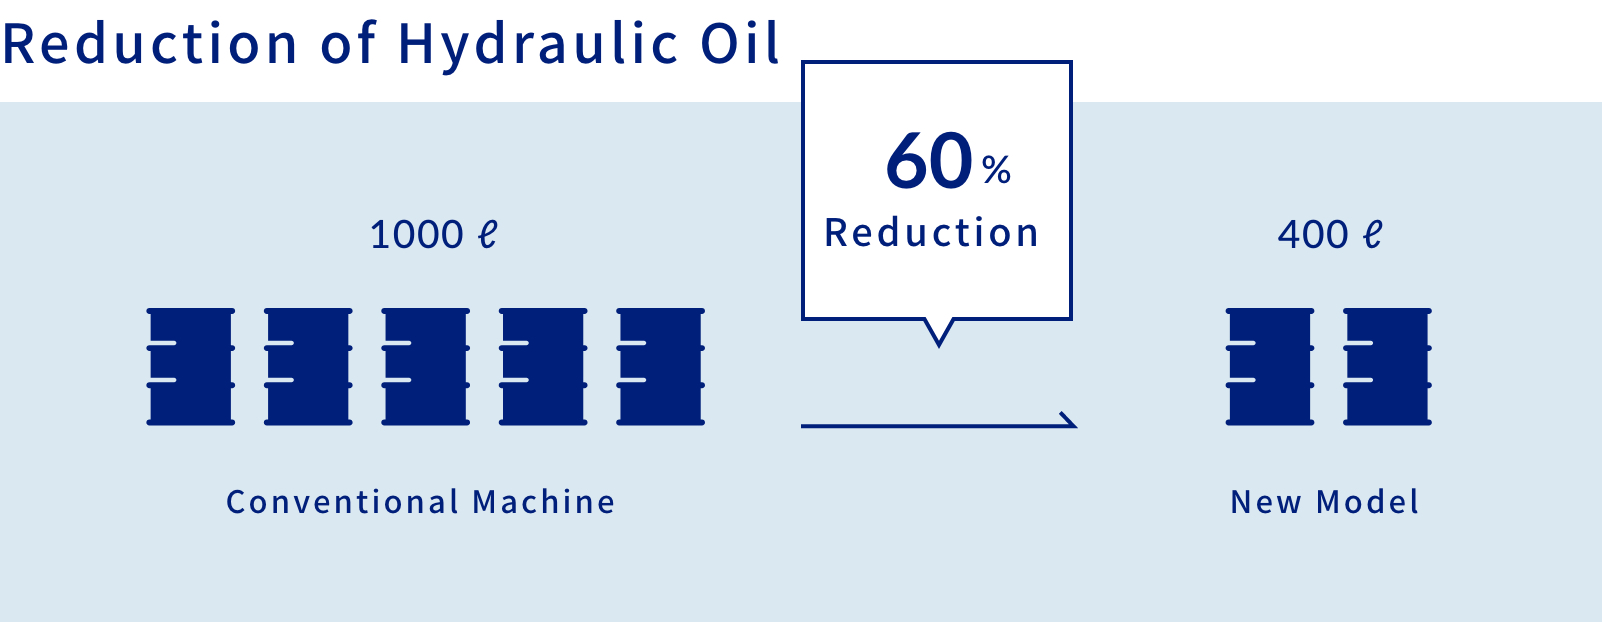 Reduction of Hydraulic Oil   60% Reduction